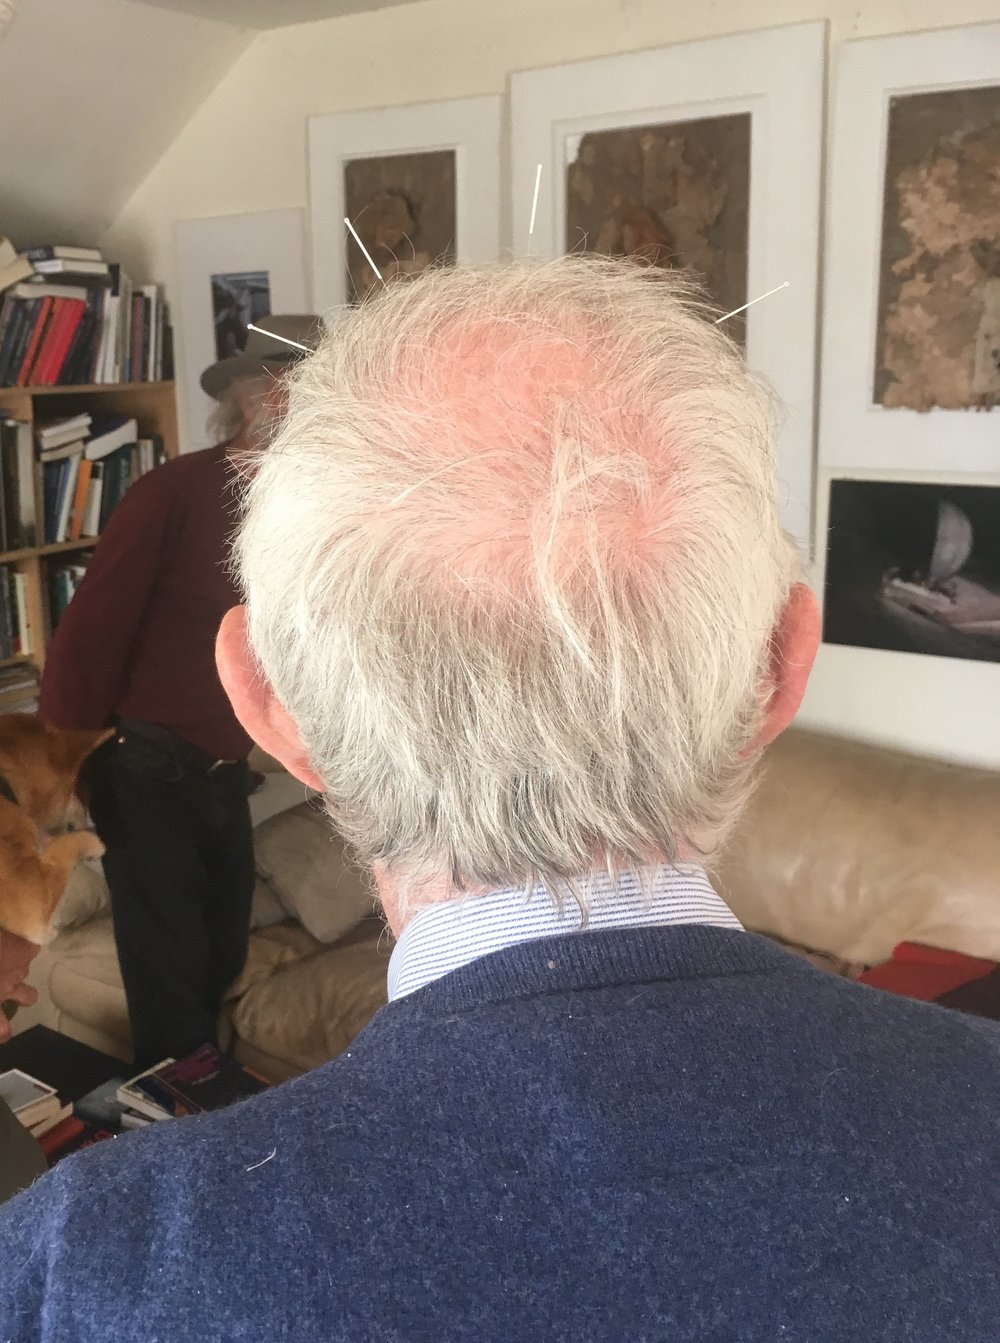 The back of the German acupuncturists head, sporting 4 acupuncture needles